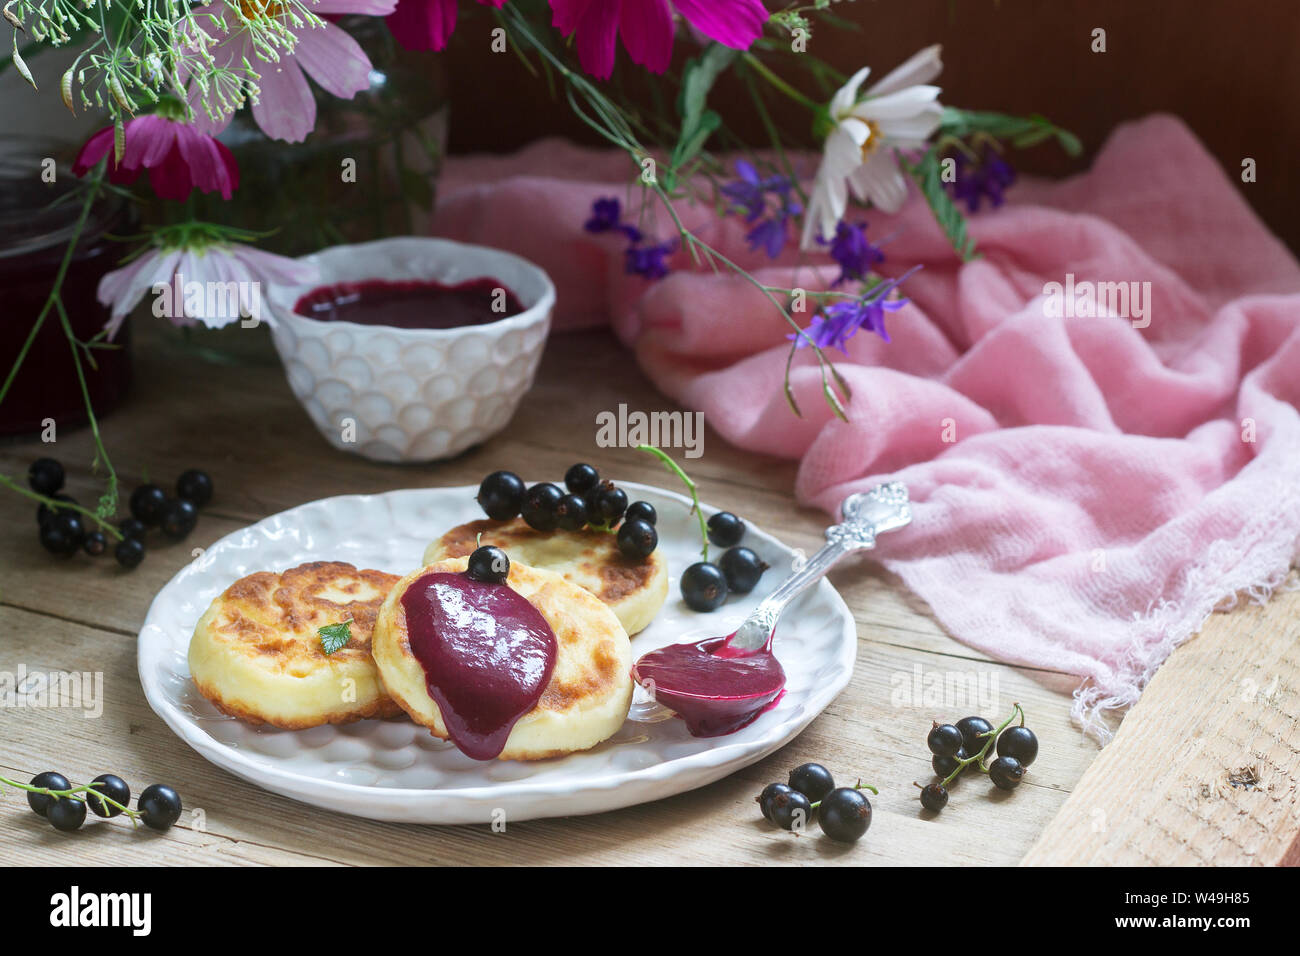 Breakfast of quark pancakes, black currant custard, currants and a bouquet of wild flowers on a wooden background. Stock Photo